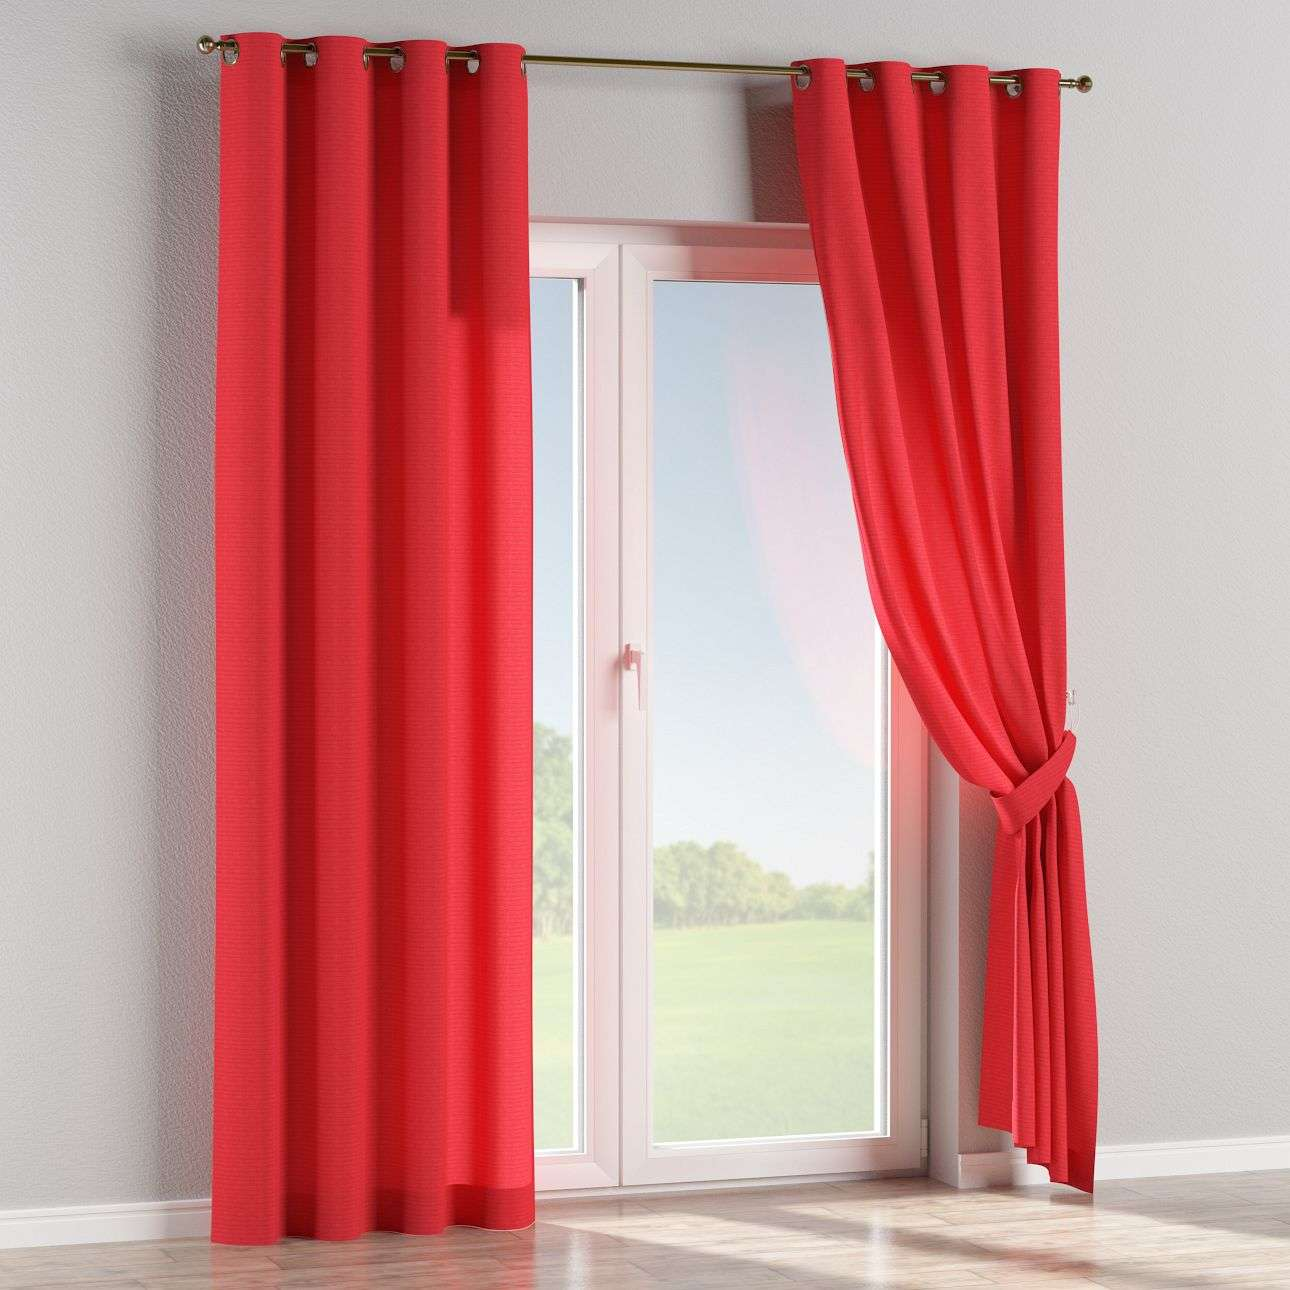 Eyelet curtains 130 x 260 cm (51 x 102 inch) in collection Jupiter, fabric: 127-14